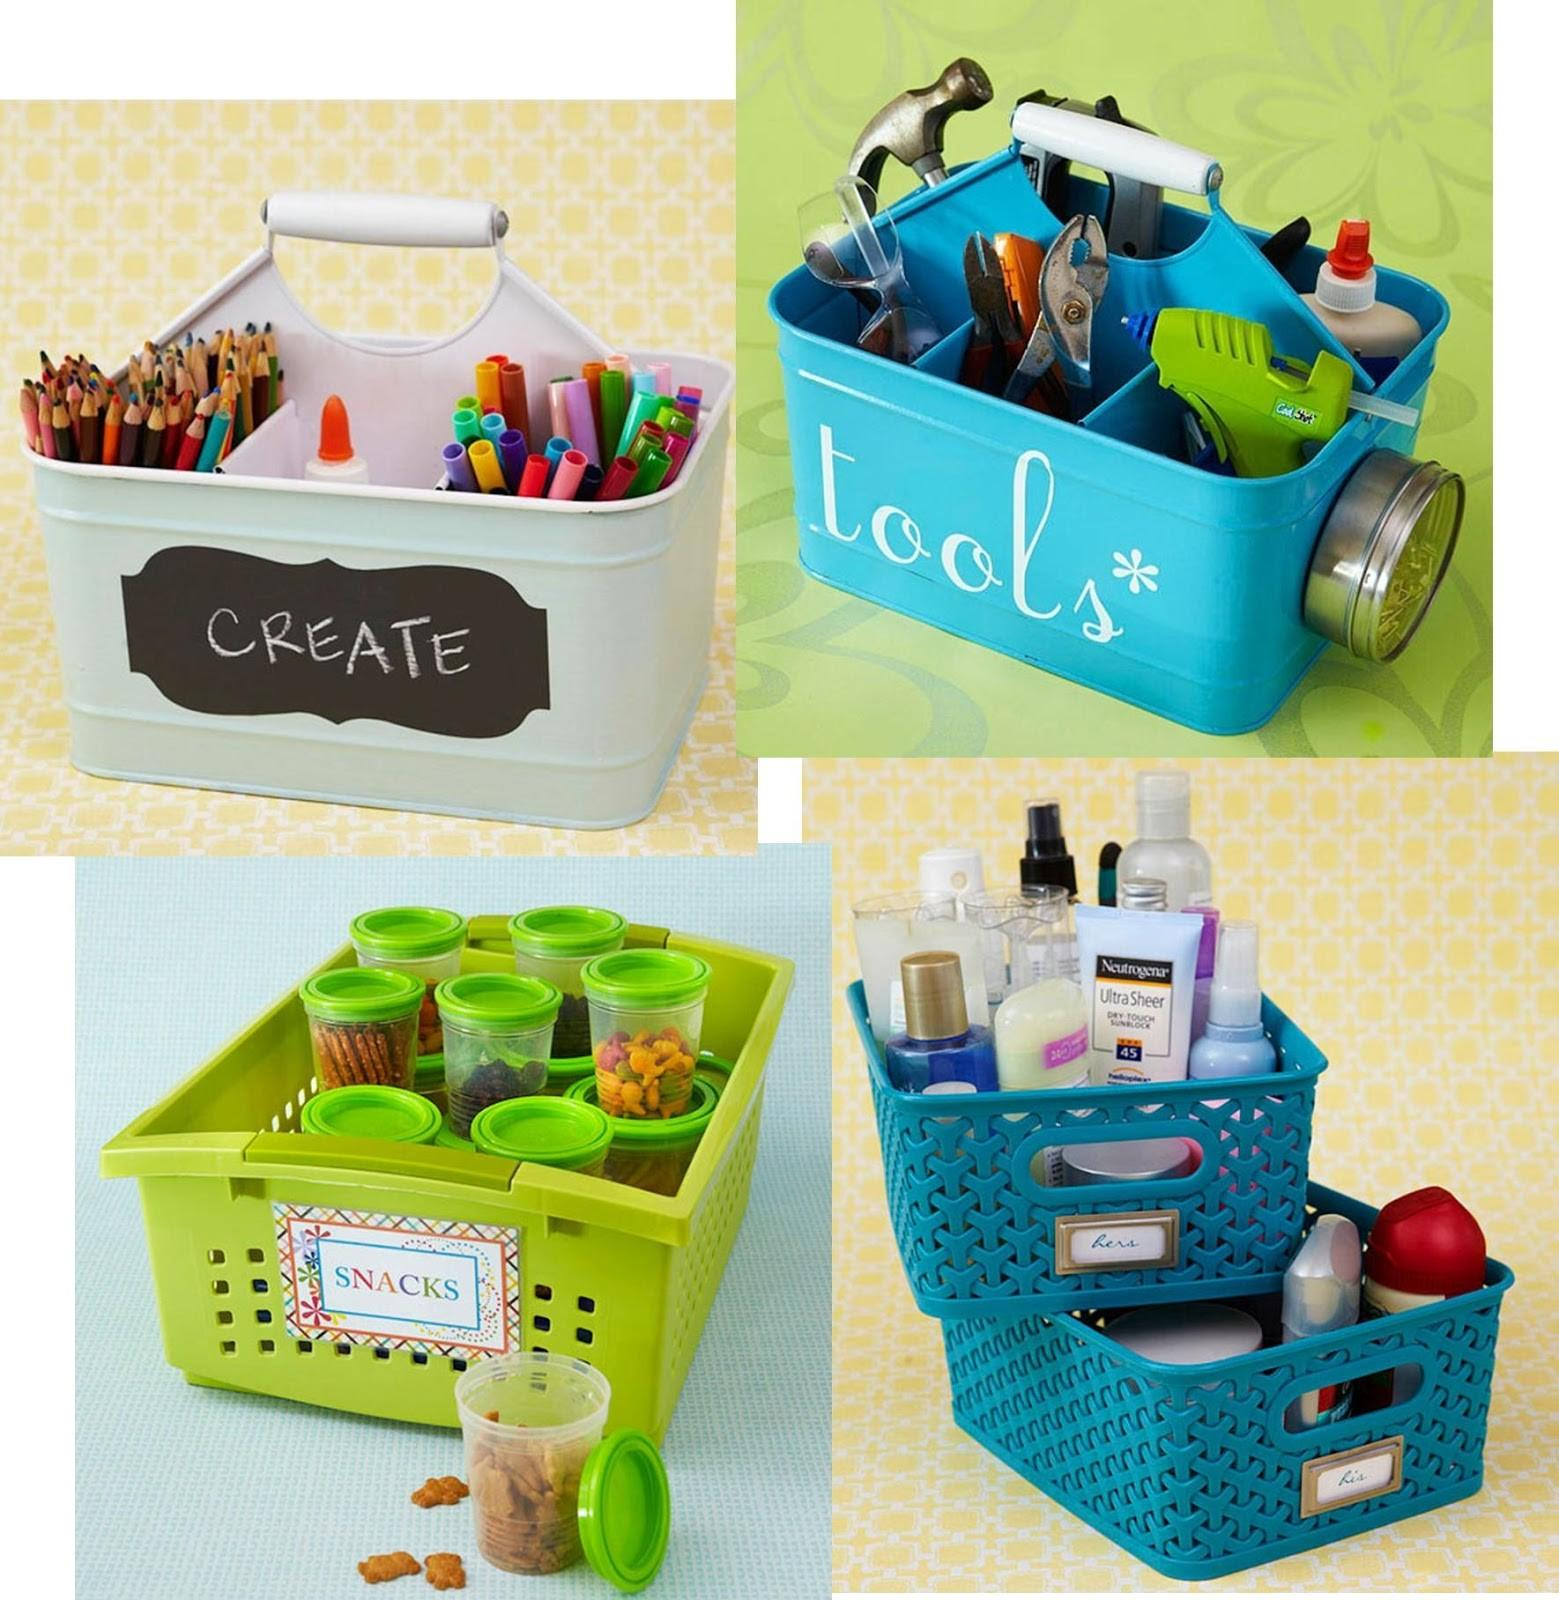 Written Wall Create Organizing Kits Tips